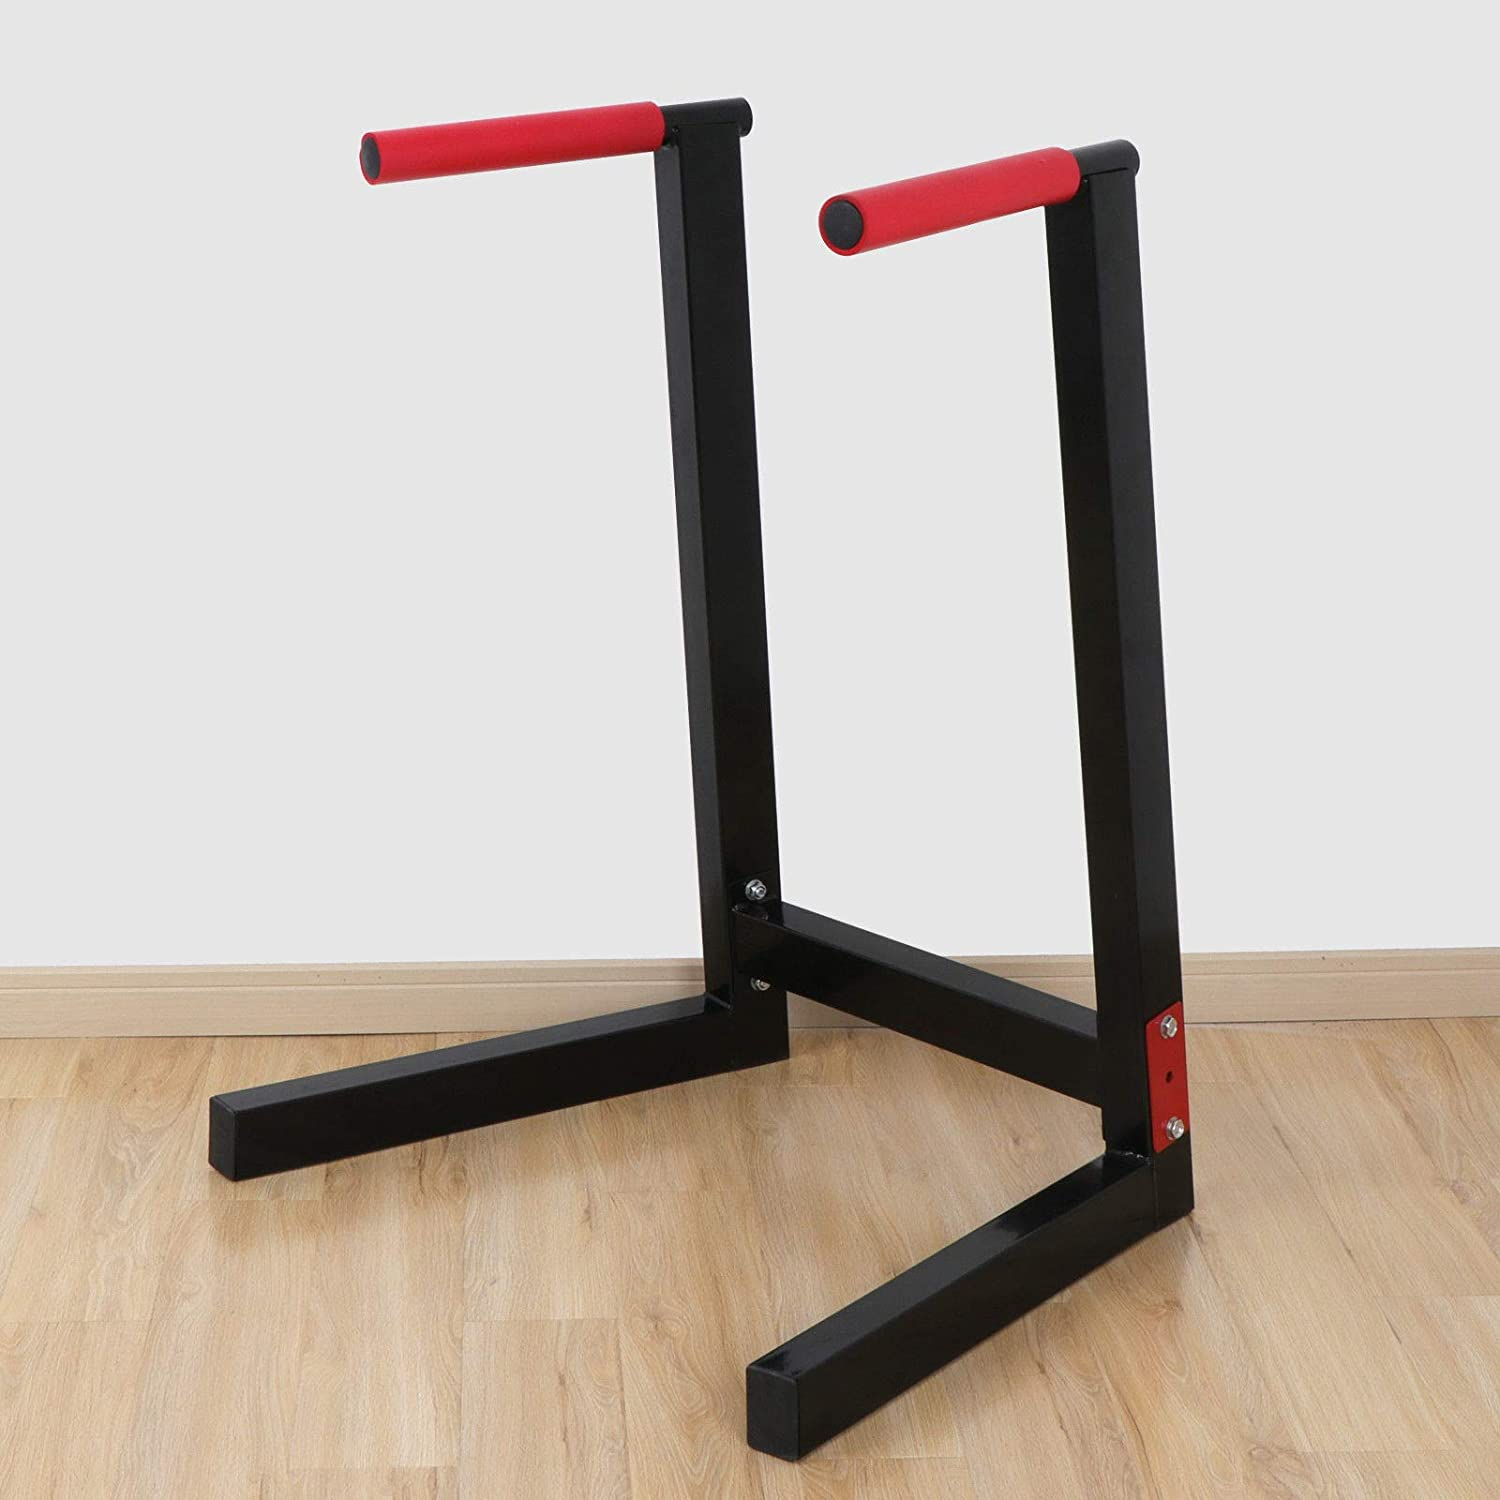 ZENY Heavy Duty Dip Station Dipping Stand Full Pull Up Parallel Bar Bicep Triceps Home Gym Exercise Workout Dip Bar w Non-Slip Grips 440lbs Capacity